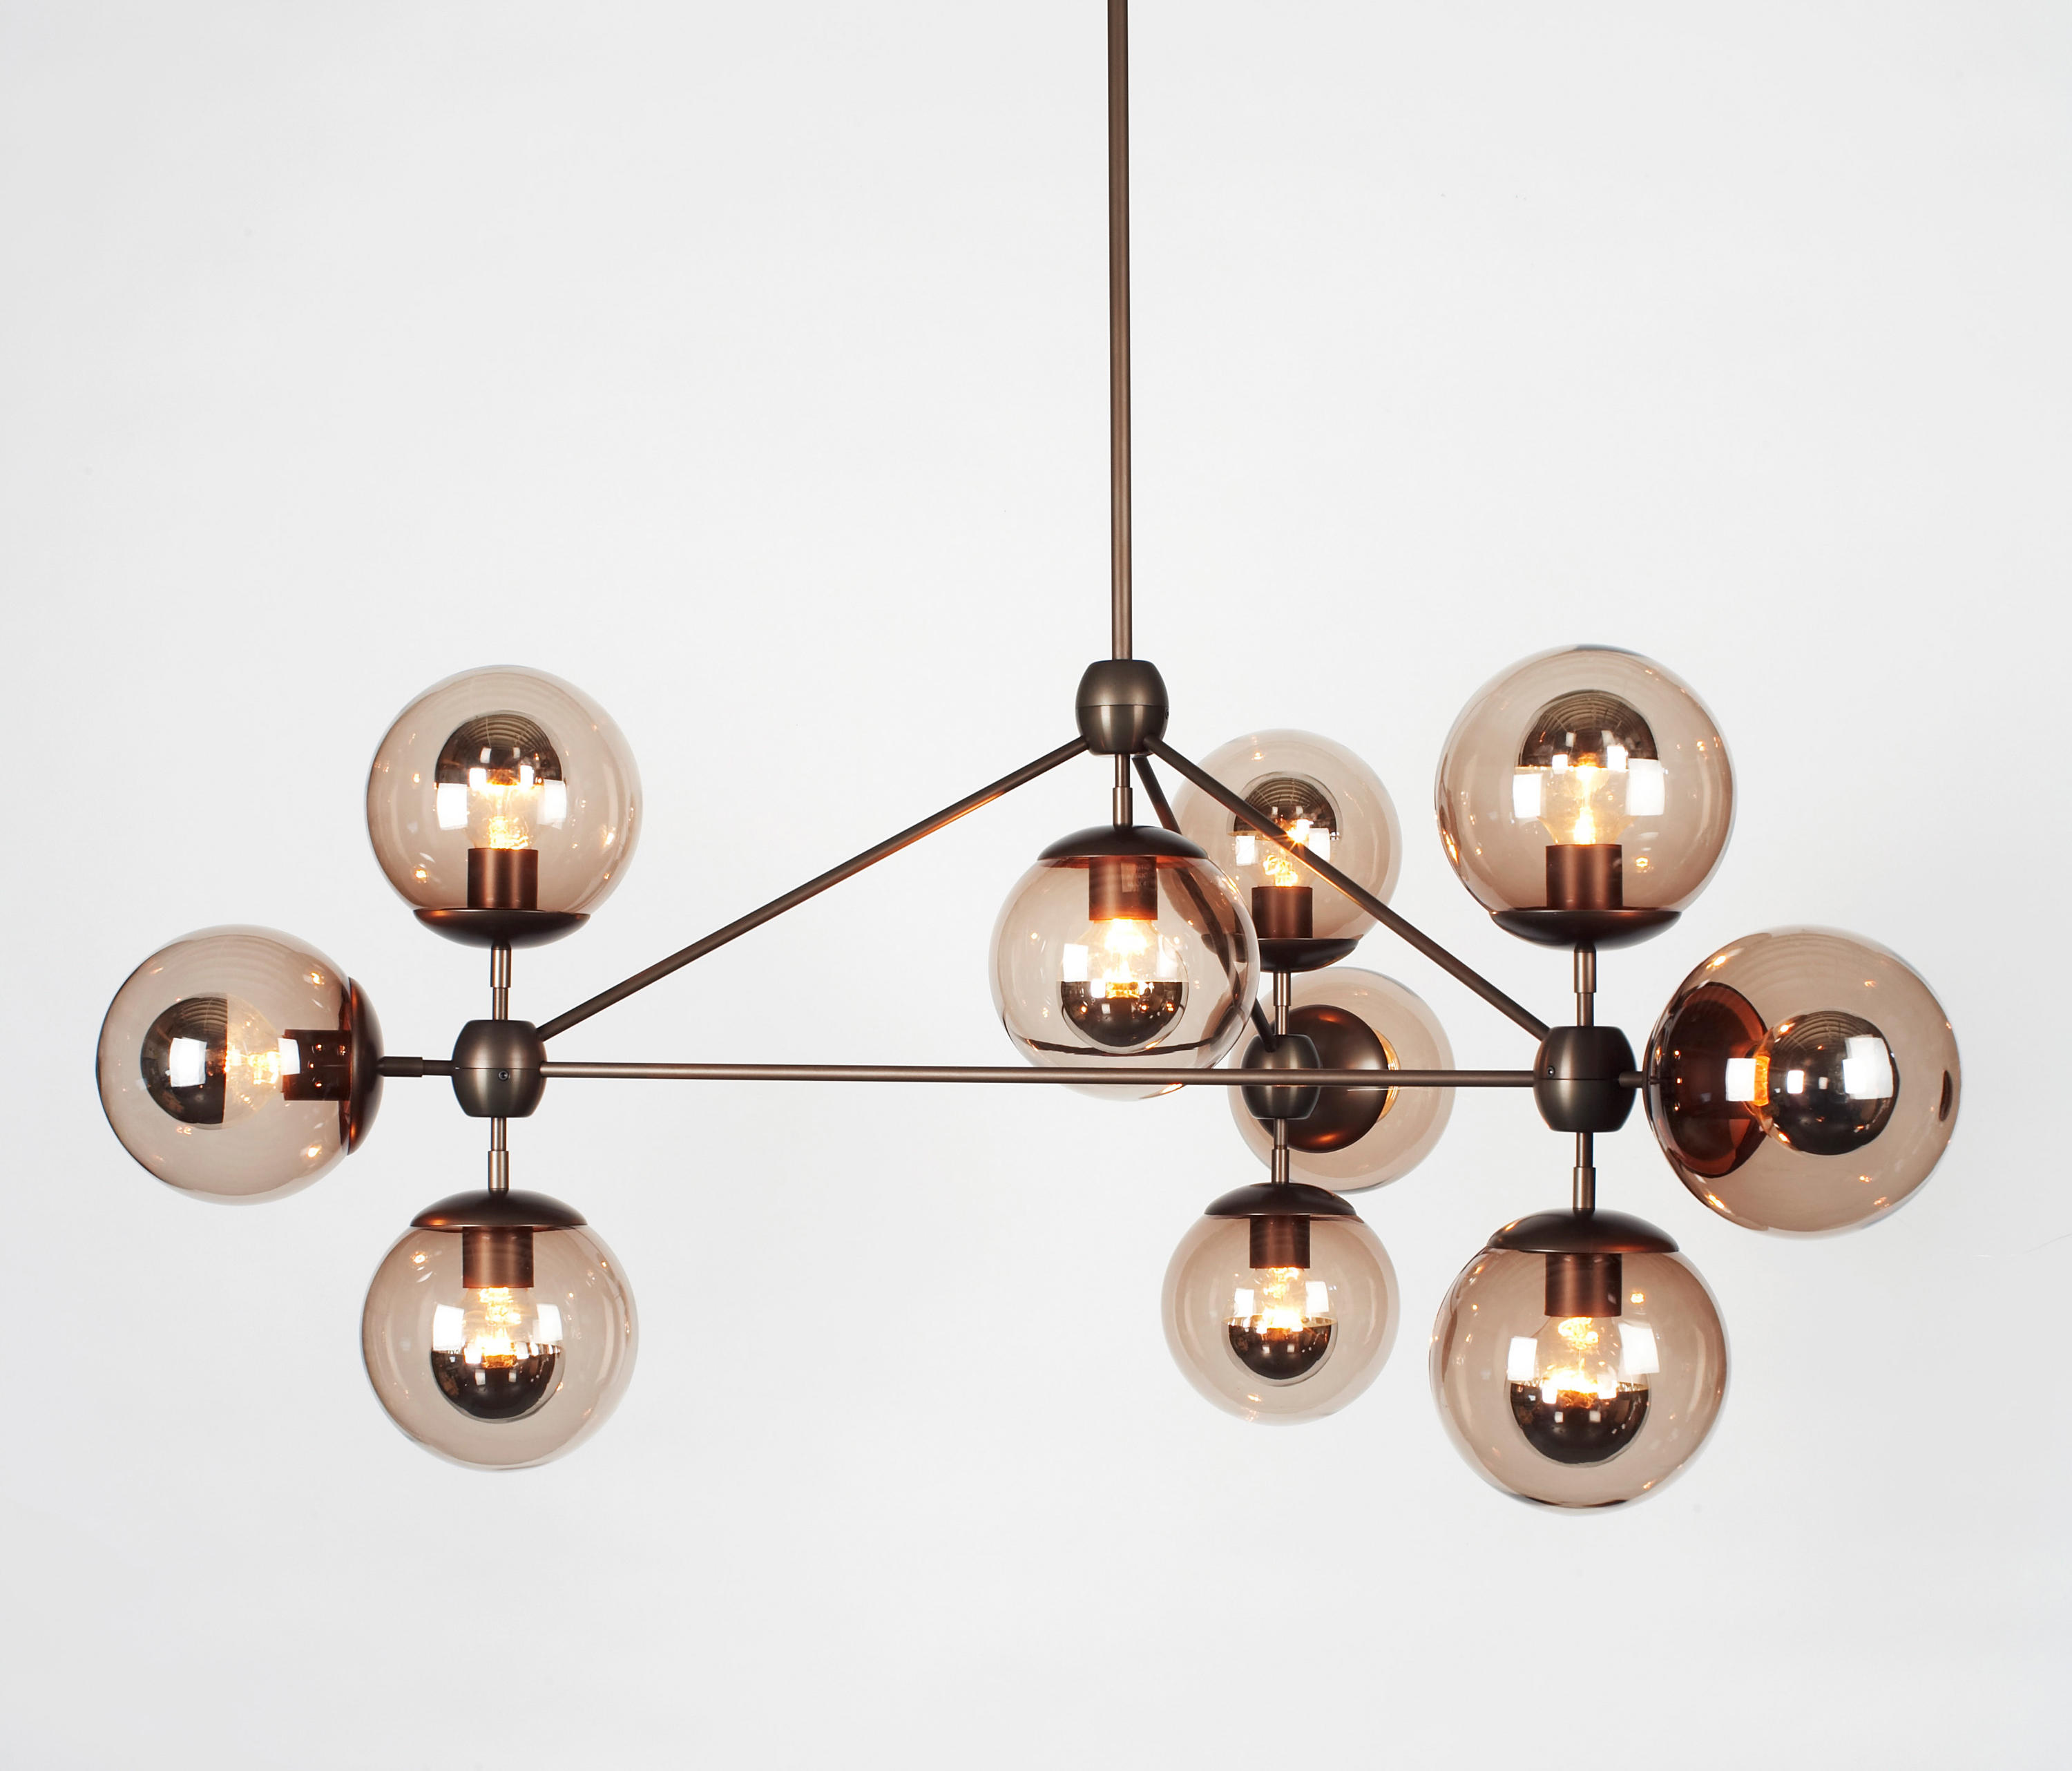 modo chandelier 10 globes bronze smoke general lighting from roll hill architonic. Black Bedroom Furniture Sets. Home Design Ideas